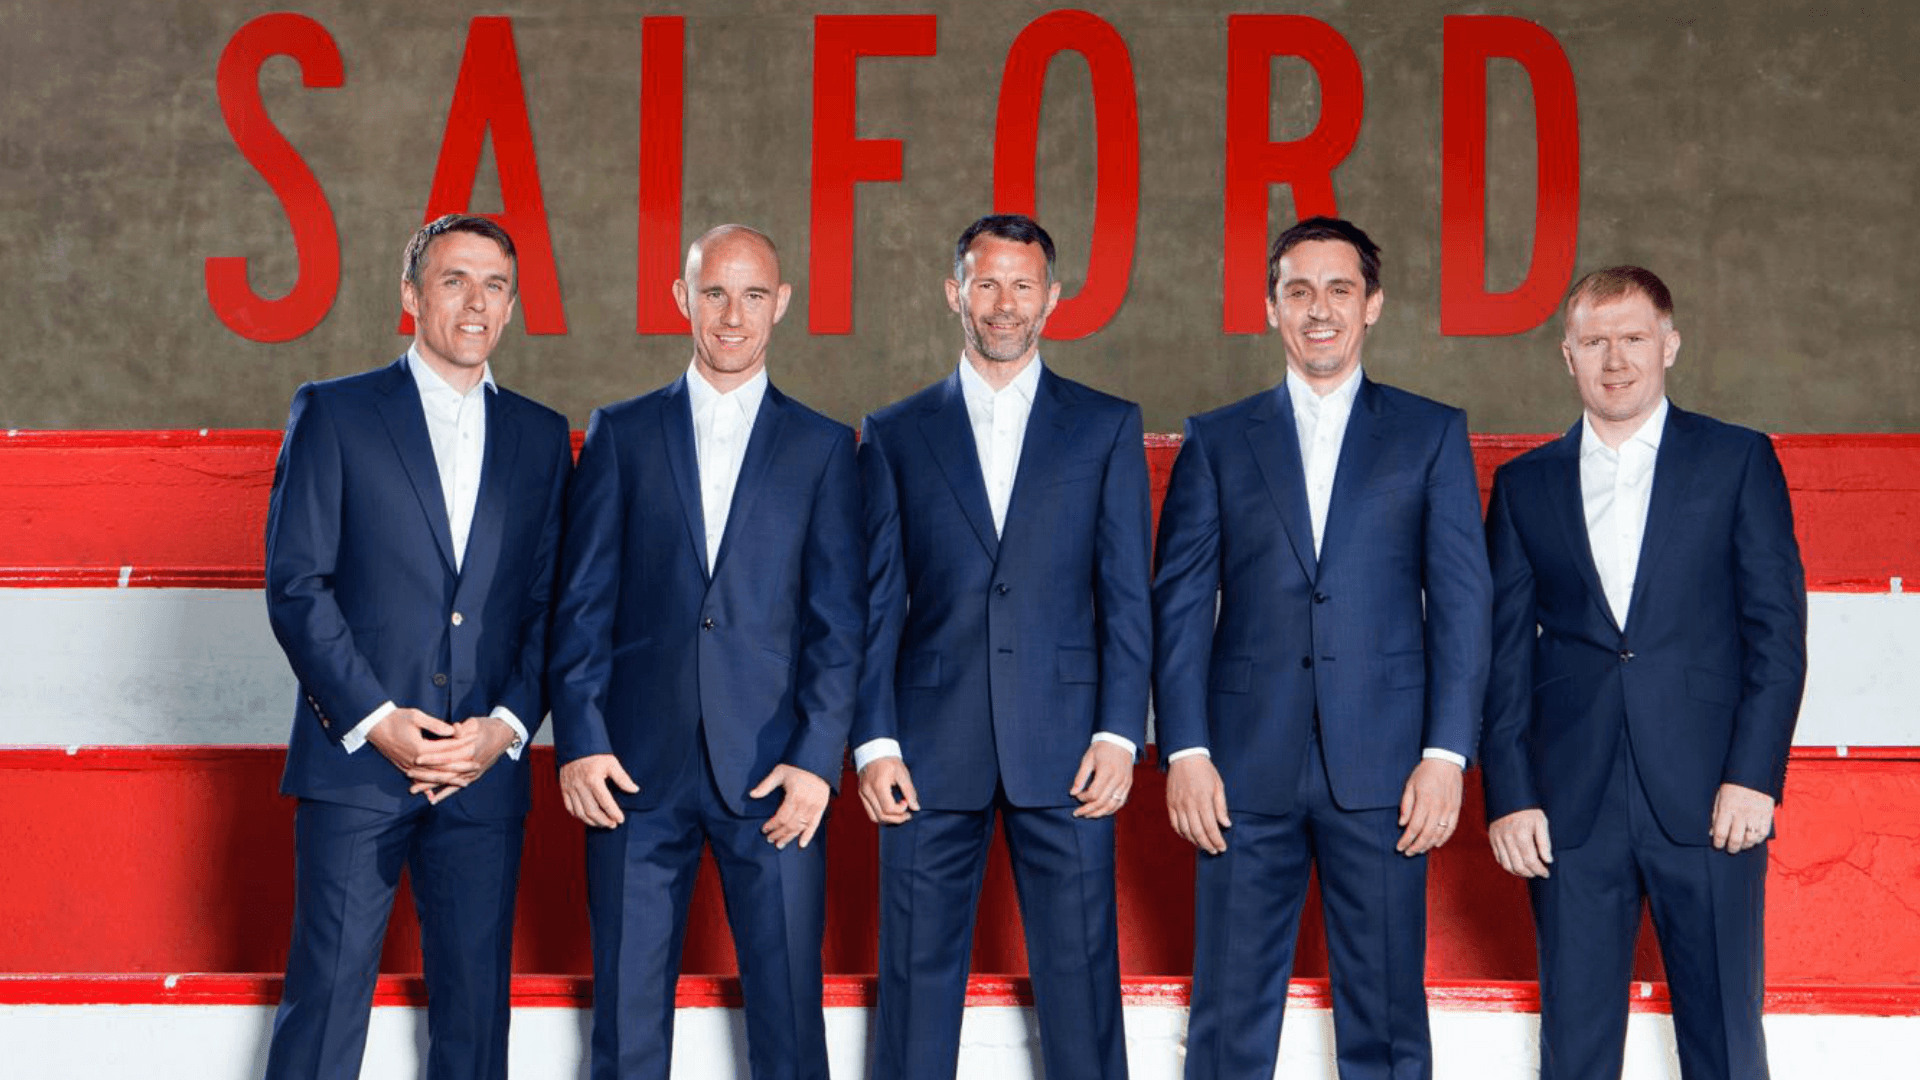 Class Of 92: Out Of Their League Salford City FC